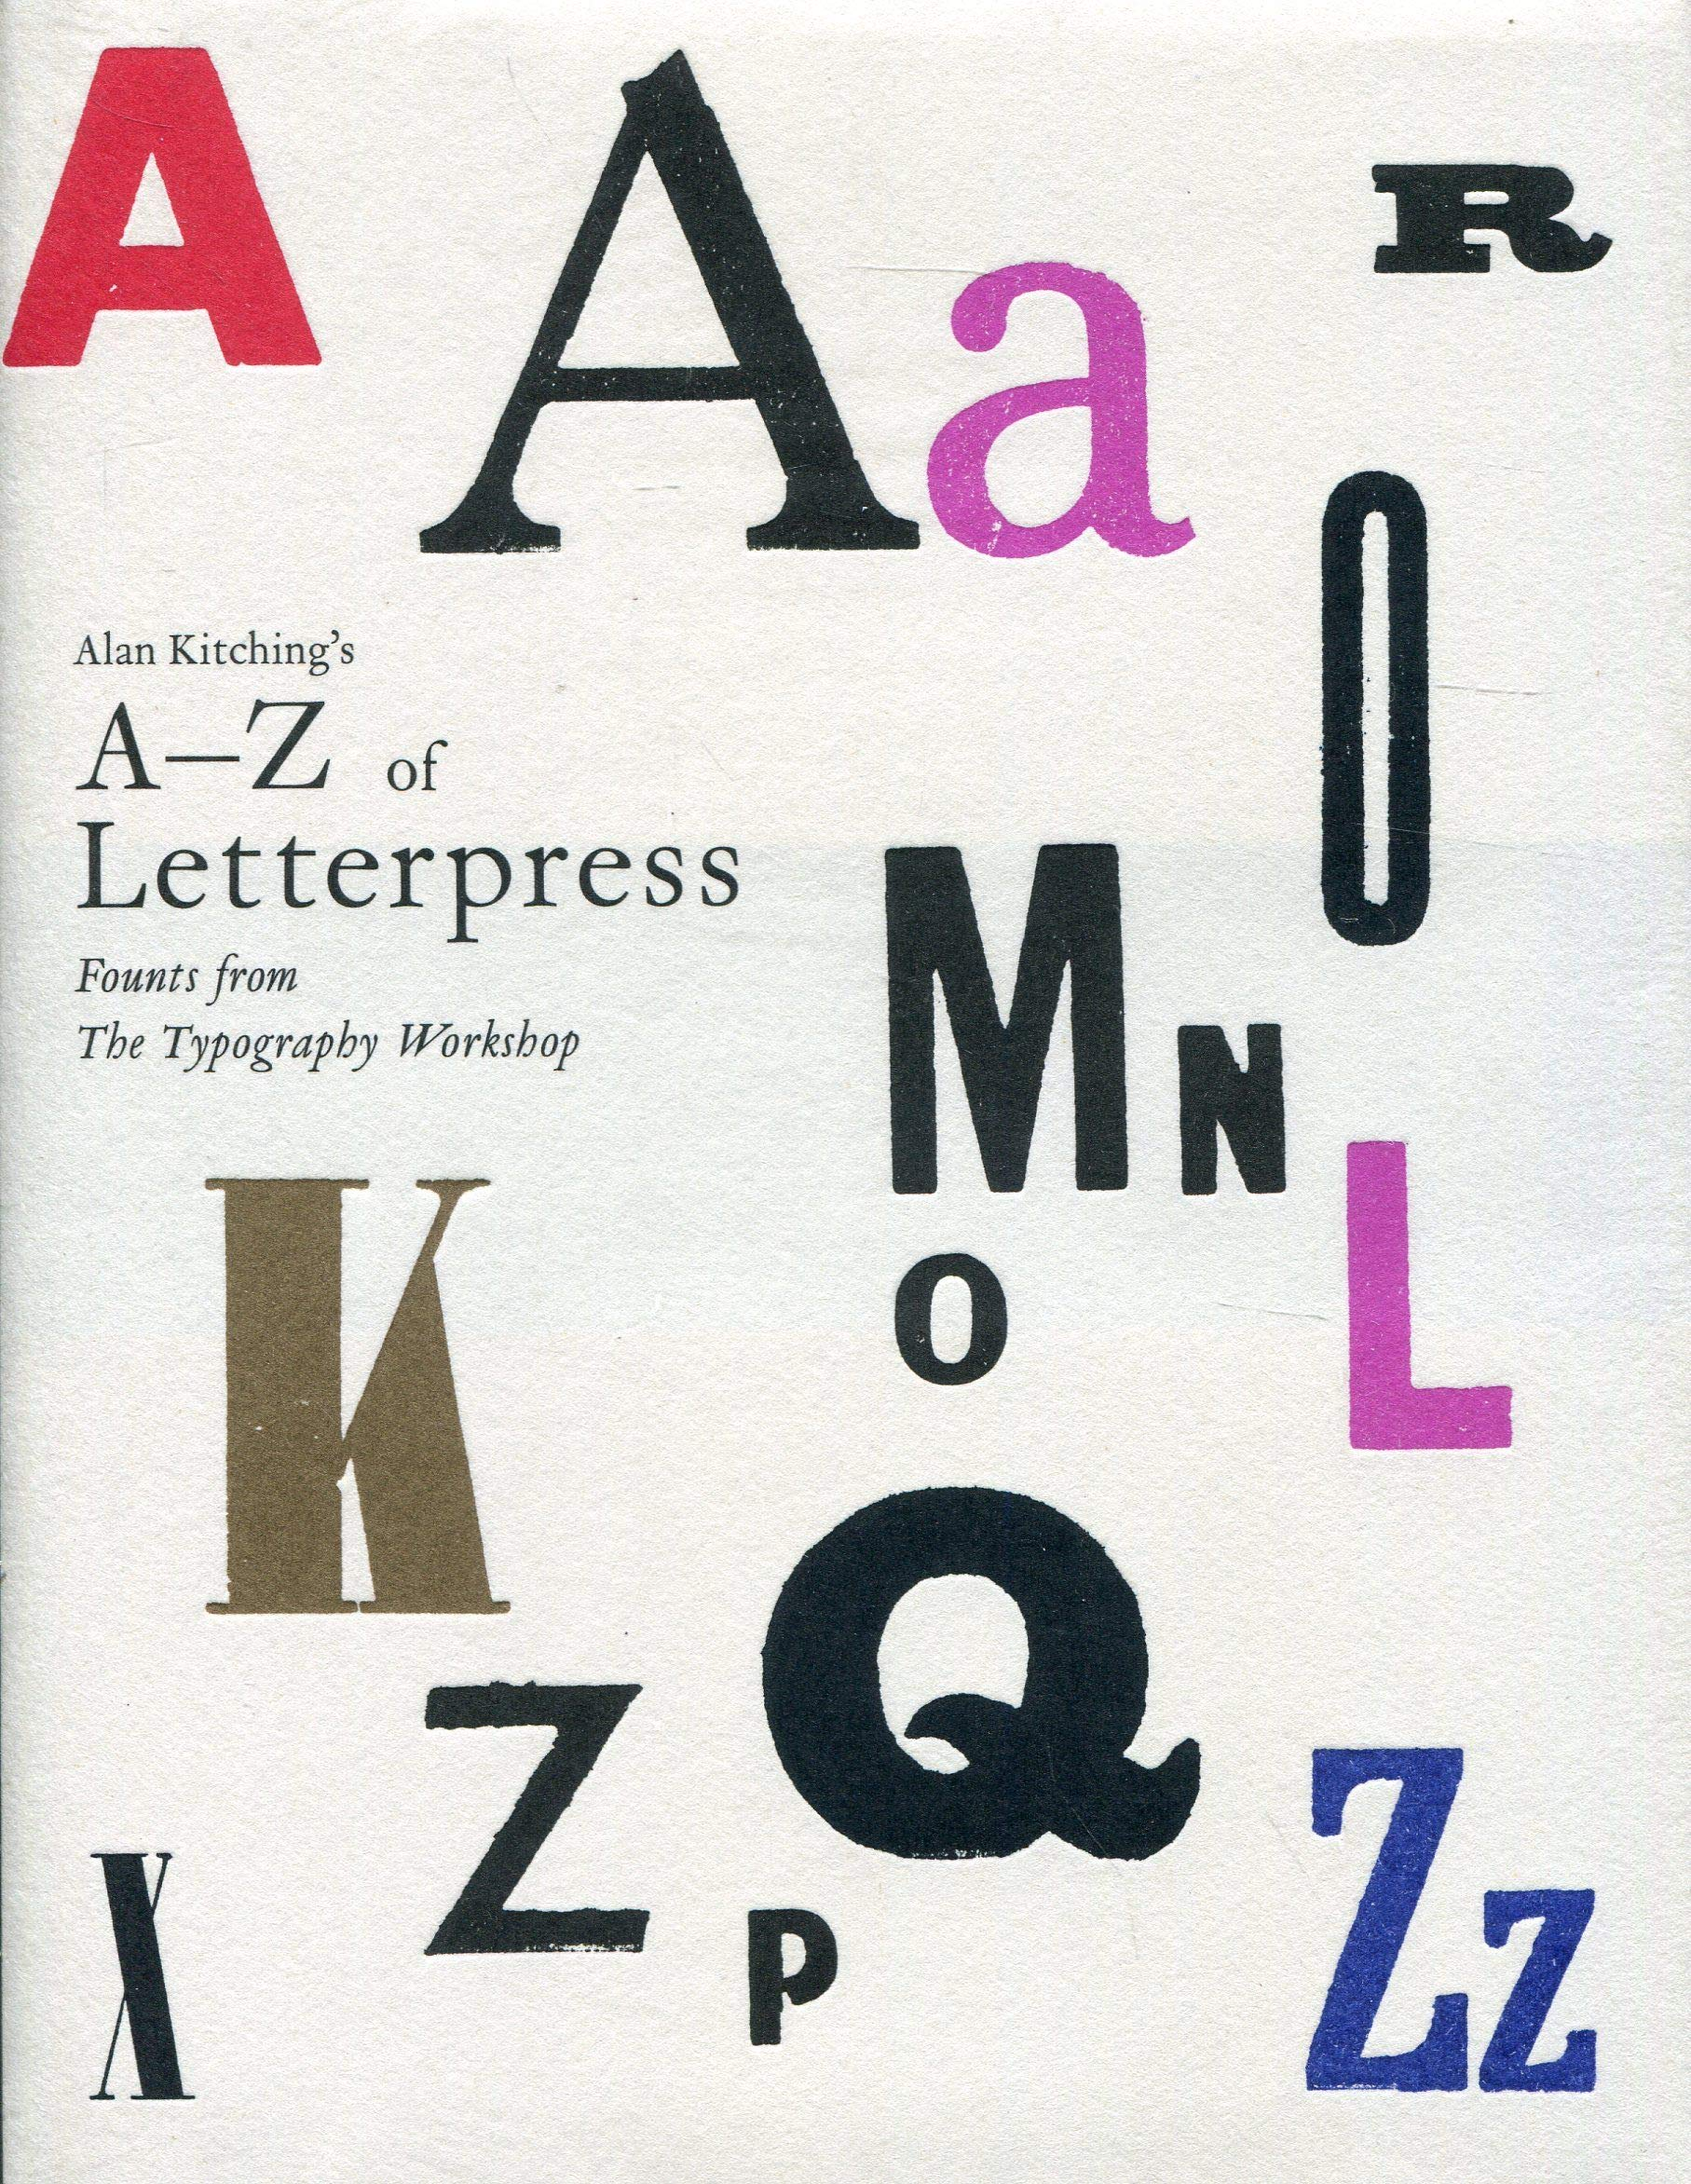 Alan Kitching's A-Z of Letterpress: Founts from The